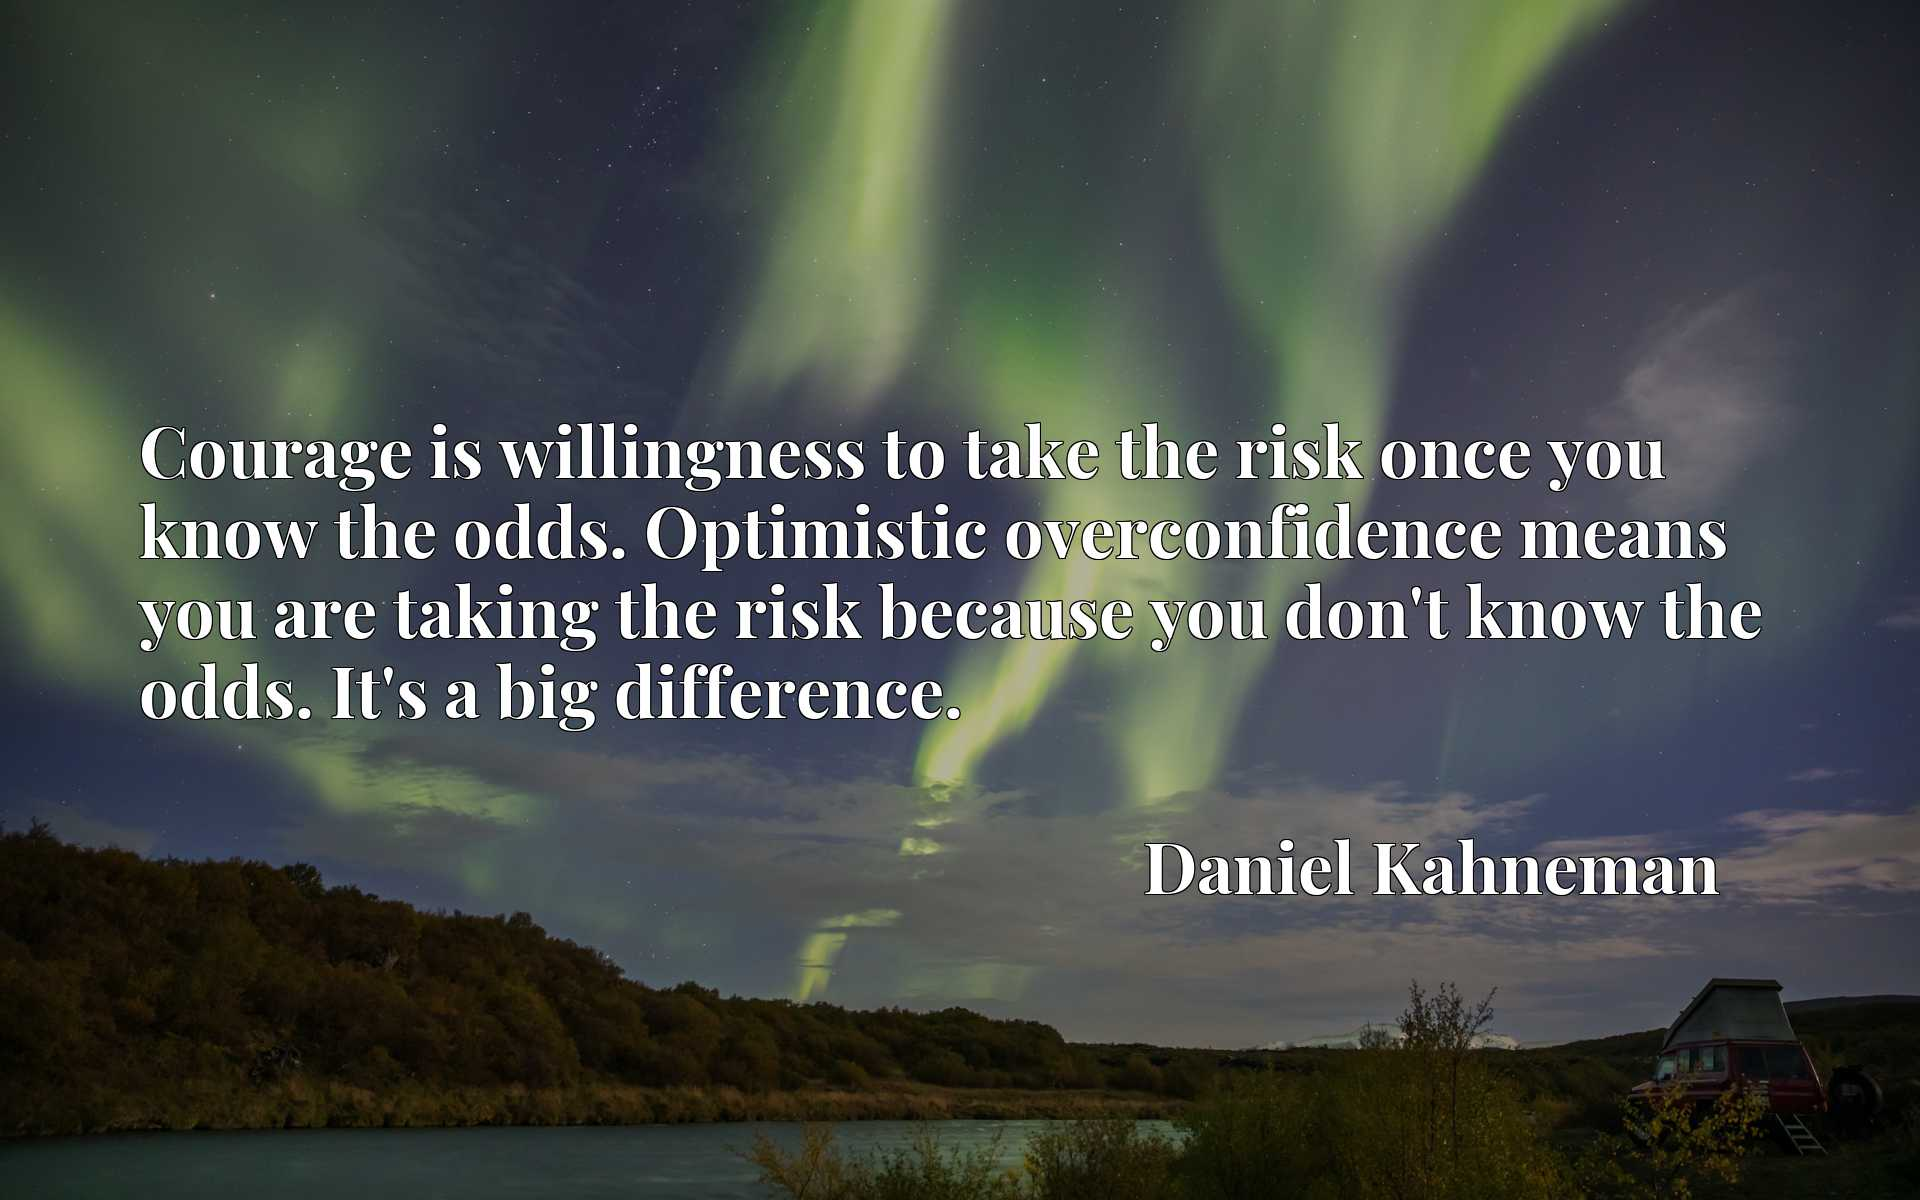 Courage is willingness to take the risk once you know the odds. Optimistic overconfidence means you are taking the risk because you don't know the odds. It's a big difference.